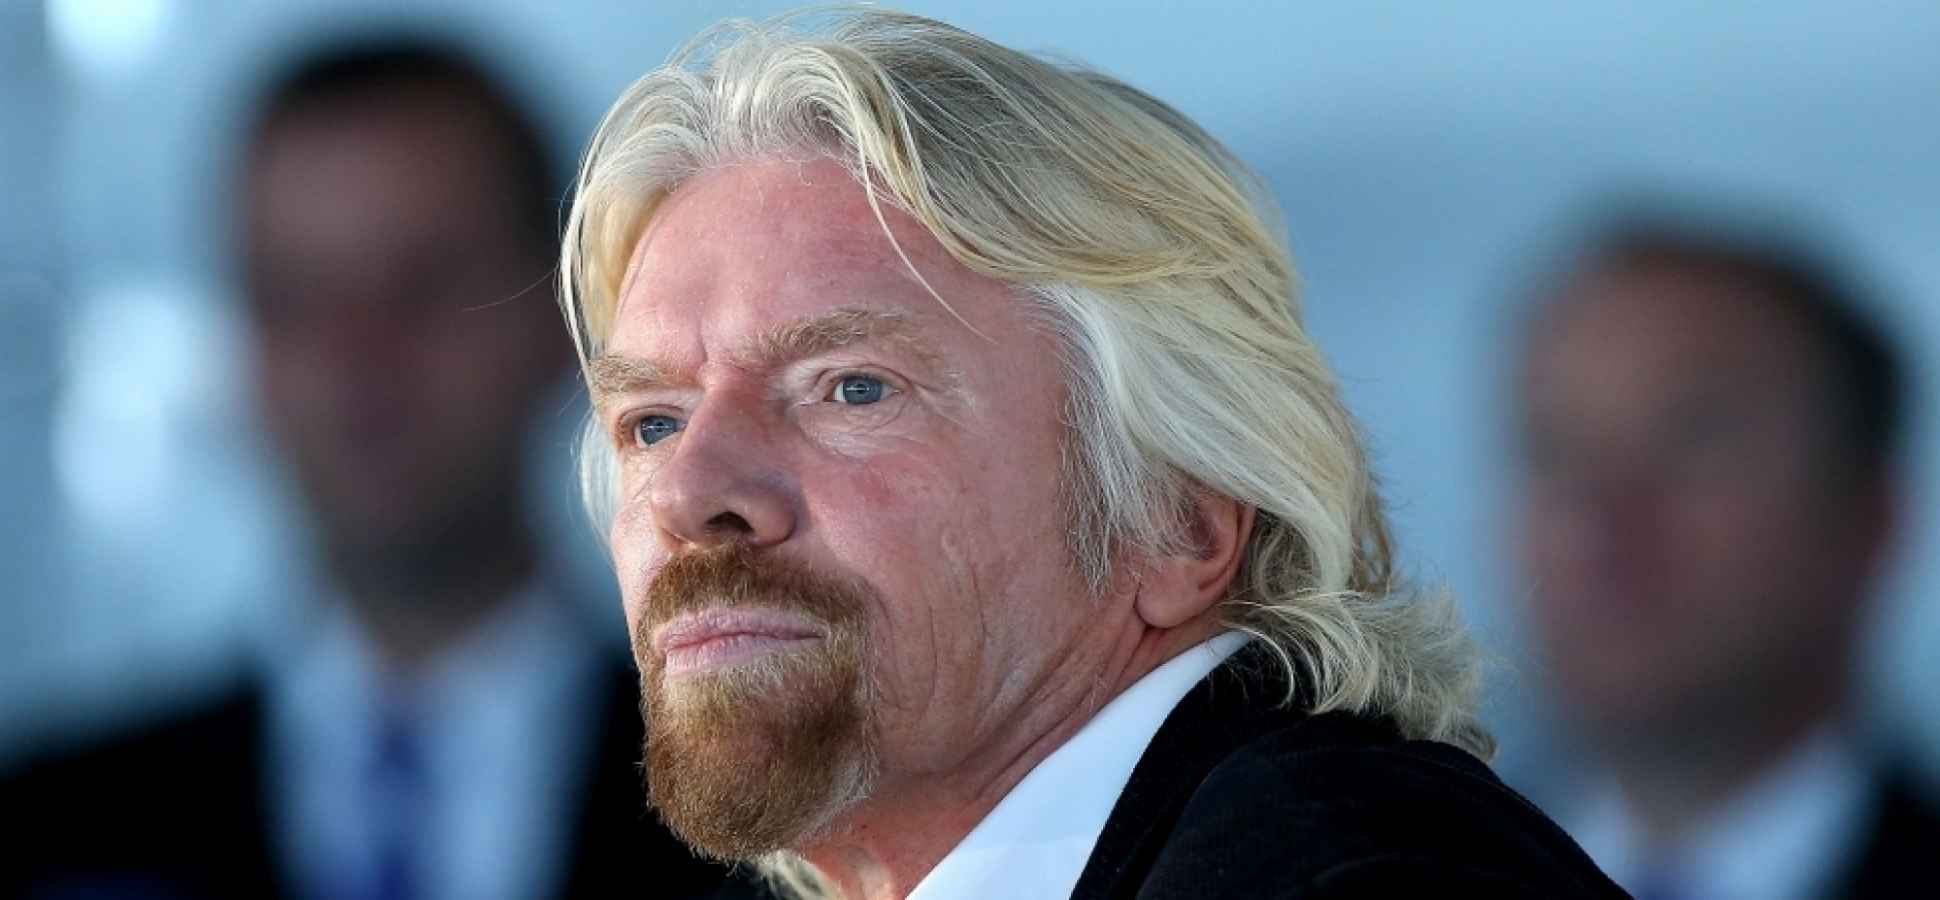 11 Richard Branson Quotes to Inspire Fulfillment at Work